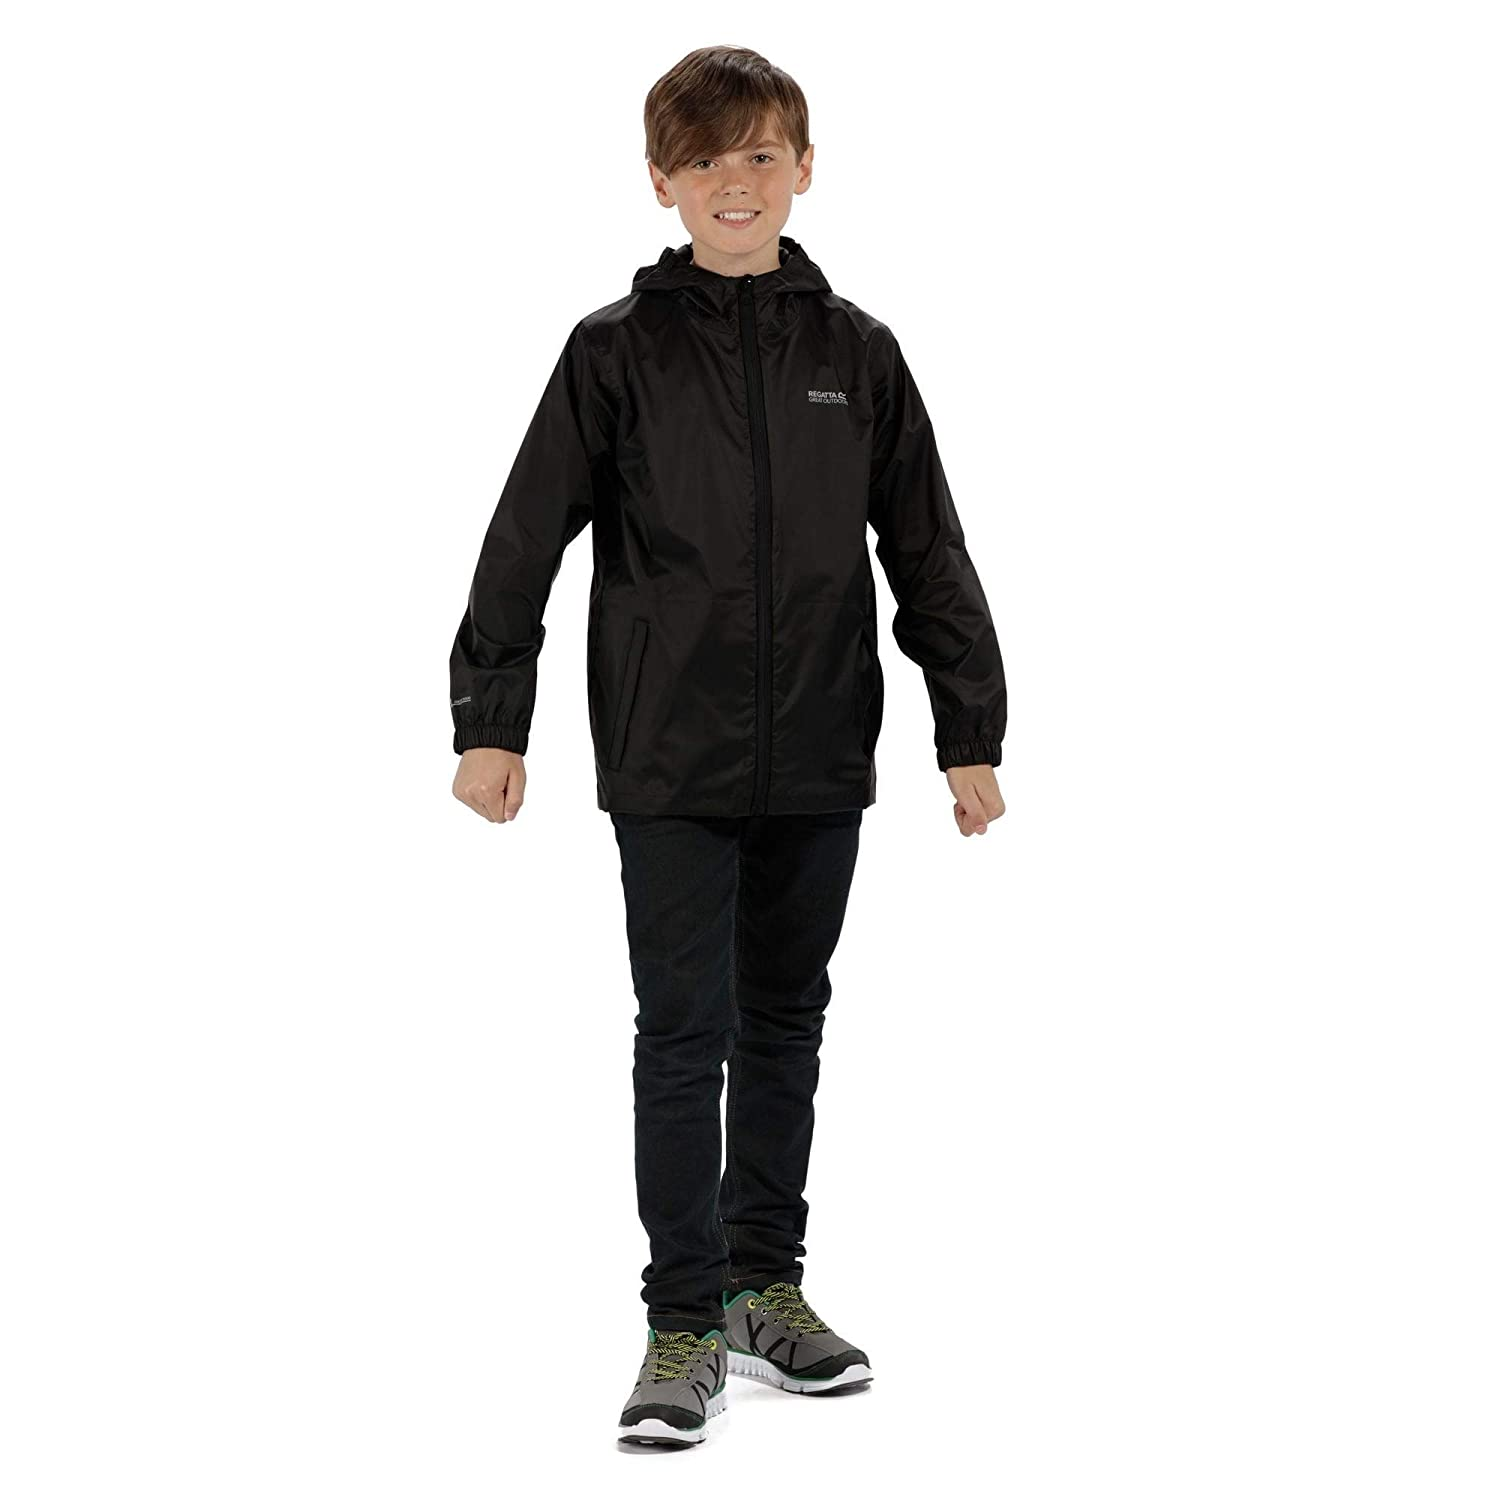 Regatta Kid PK It JKT III Childrens Waterproof Jacket Childrens